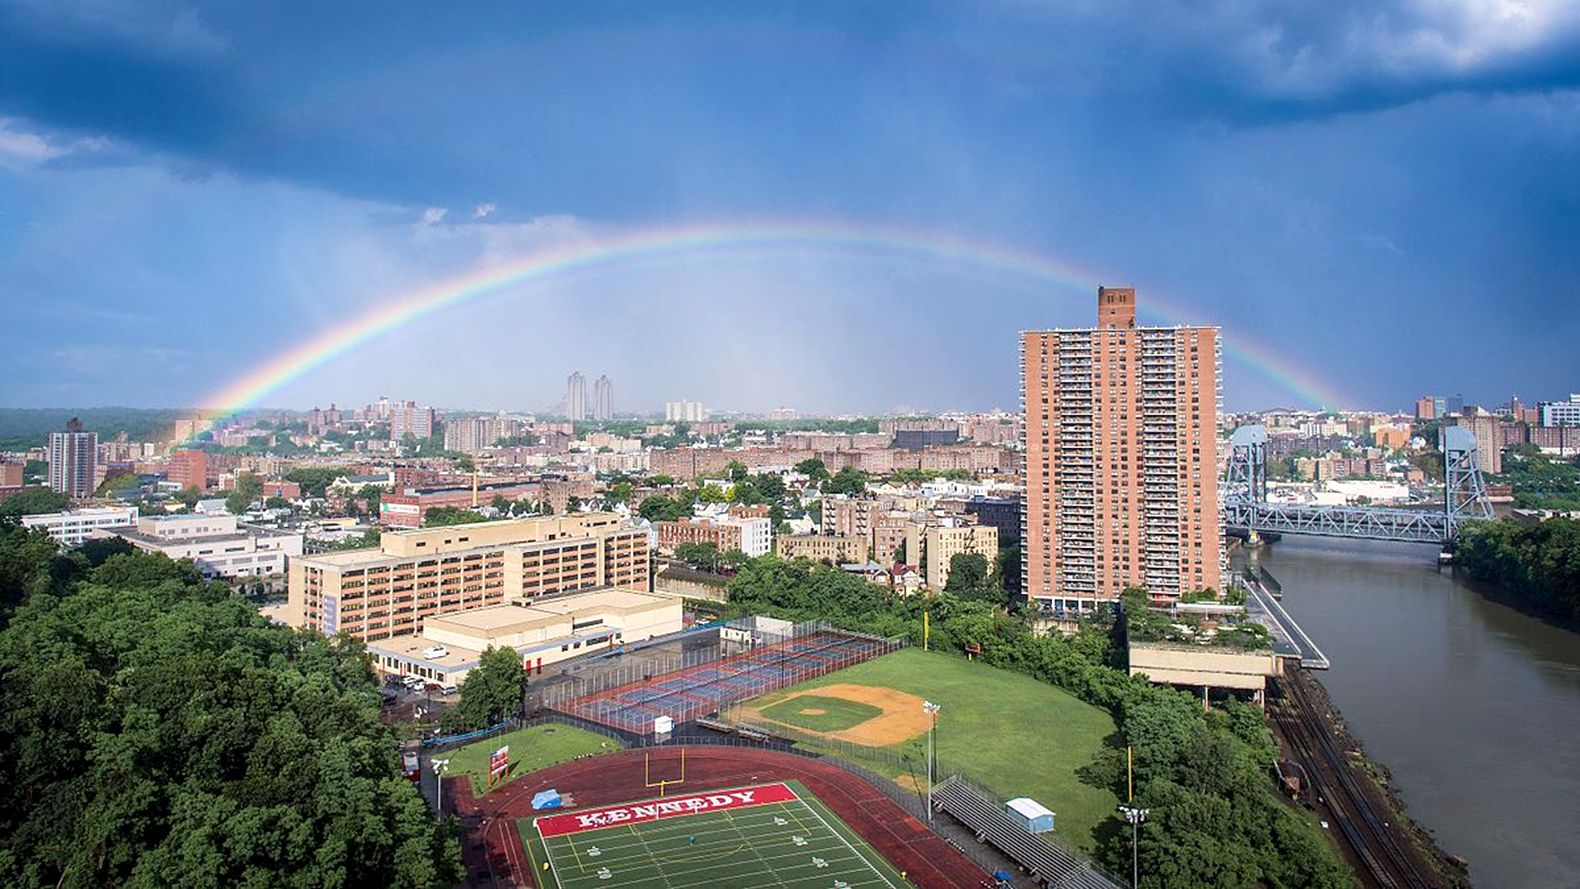 Marble Hill High School in the Bronx has been highlighted by Stanford University as one of the top schools for high-quality ELL instruction.